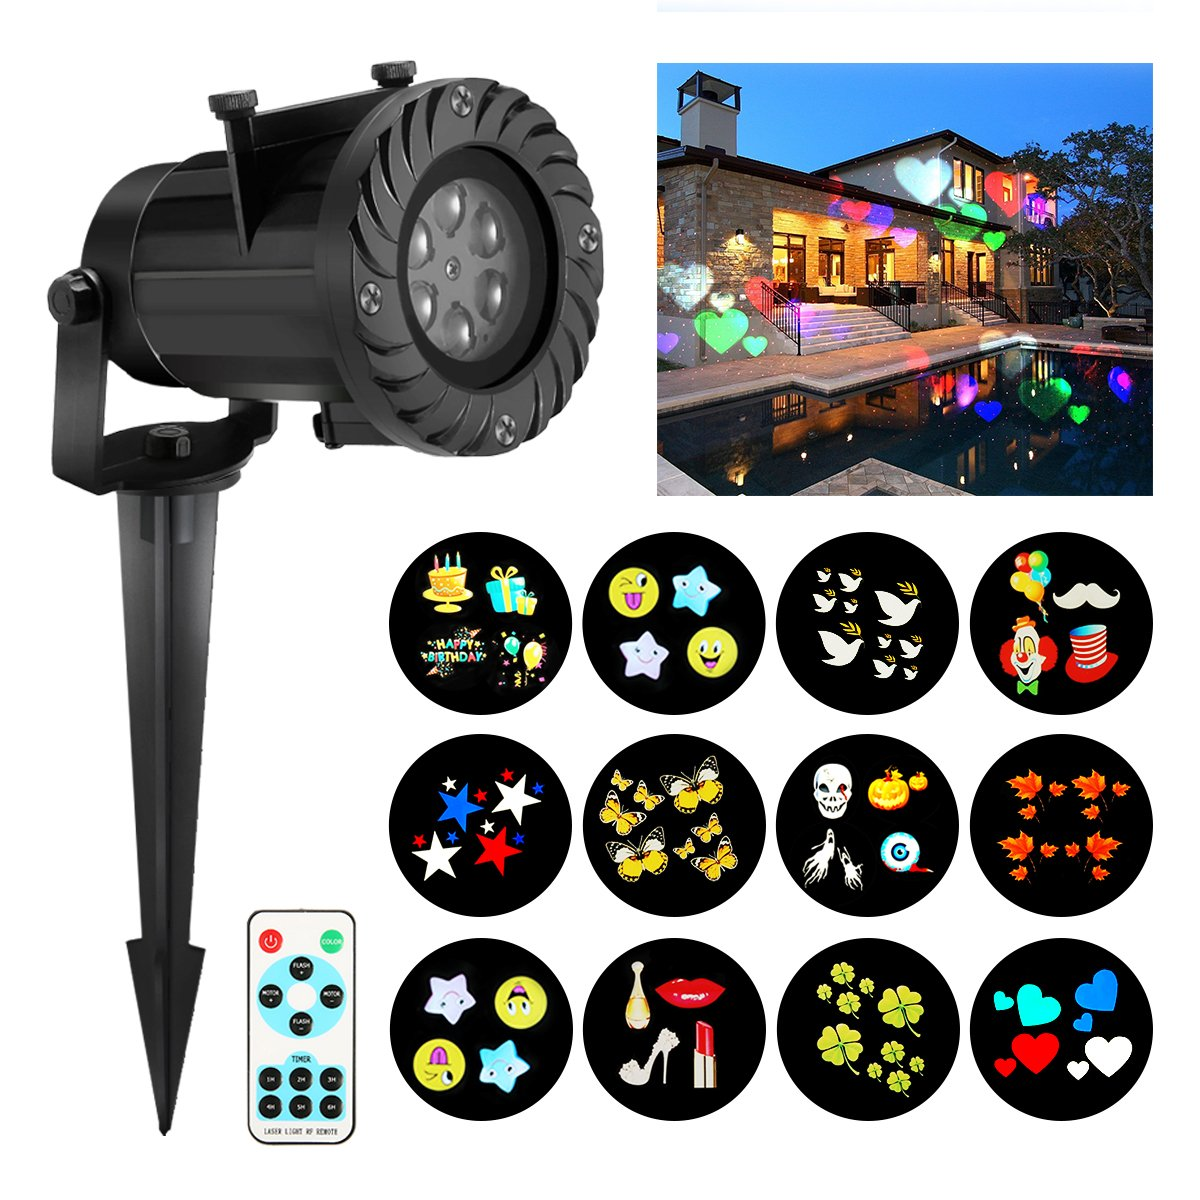 Christmas Projector Lights, JELEGANT LED Landscape Lights Projector Spotlights with Remote Control Waterproof Decoration Lighting with 12pcs Switchable Pattern Show for Halloween Holiday Party by JELEGANT (Image #1)